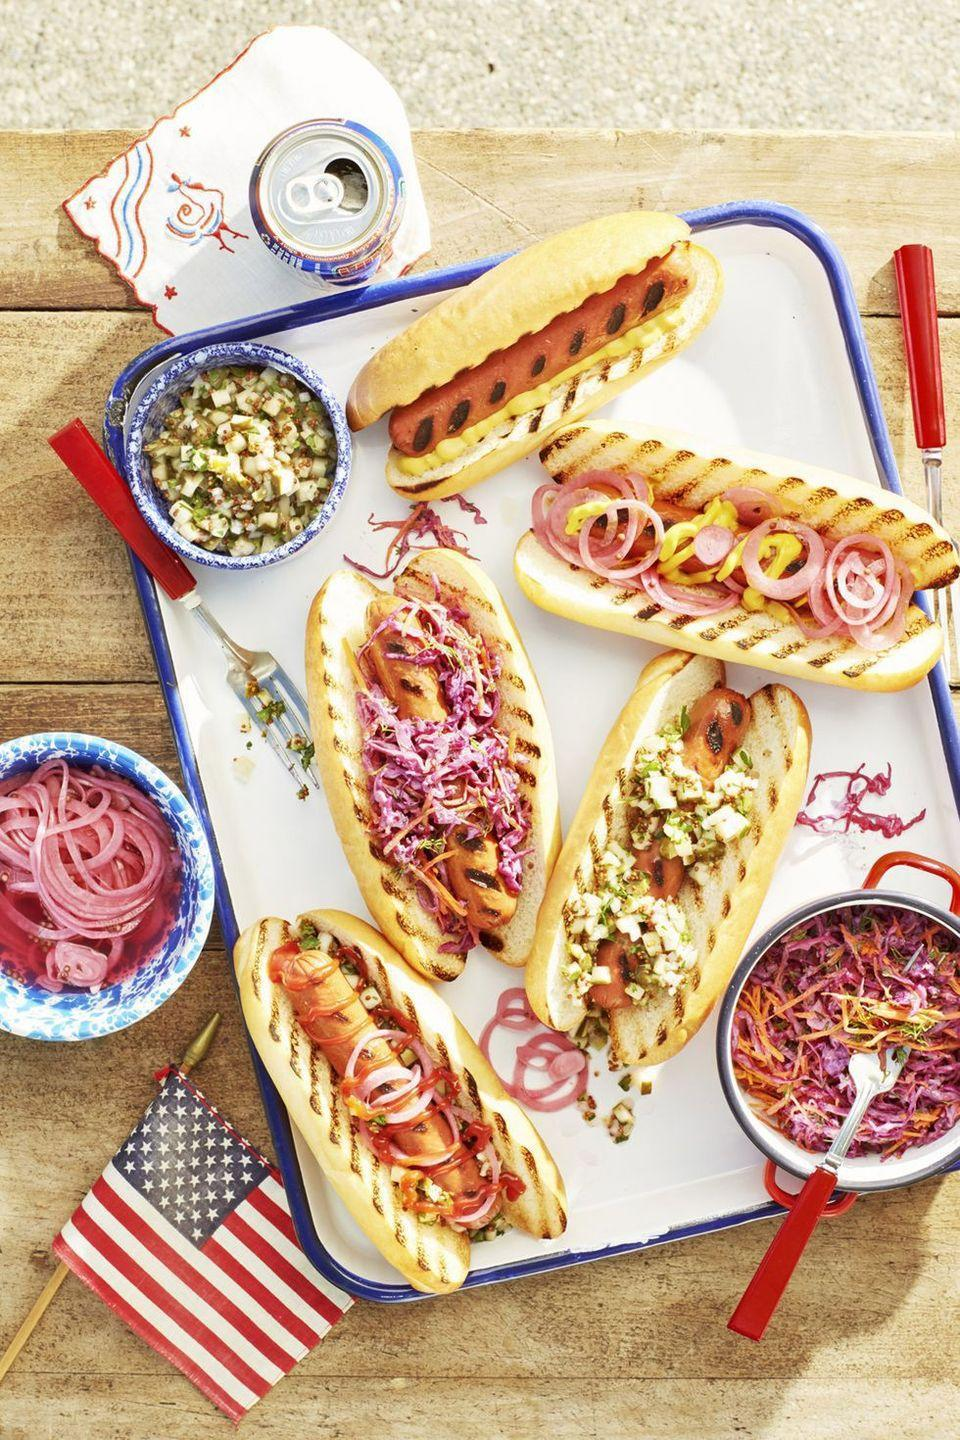 "<p>Pickles and onions, tangy horseradish, or spicy chiles: Which fixin' will be your favorite? (Good news: You can try all three!)</p><p><strong><a href=""https://www.countryliving.com/food-drinks/a21347552/grilled-hotdogs-recipe/"" rel=""nofollow noopener"" target=""_blank"" data-ylk=""slk:Get the recipe"" class=""link rapid-noclick-resp"">Get the recipe</a>.</strong></p><p><strong><a class=""link rapid-noclick-resp"" href=""https://www.amazon.com/Weber-7429-Rapid-Chimney-Starter/dp/B07B5BHKDZ/?tag=syn-yahoo-20&ascsubtag=%5Bartid%7C10050.g.3663%5Bsrc%7Cyahoo-us"" rel=""nofollow noopener"" target=""_blank"" data-ylk=""slk:SHOP CHIMNEY STARTERS"">SHOP CHIMNEY STARTERS</a></strong></p>"